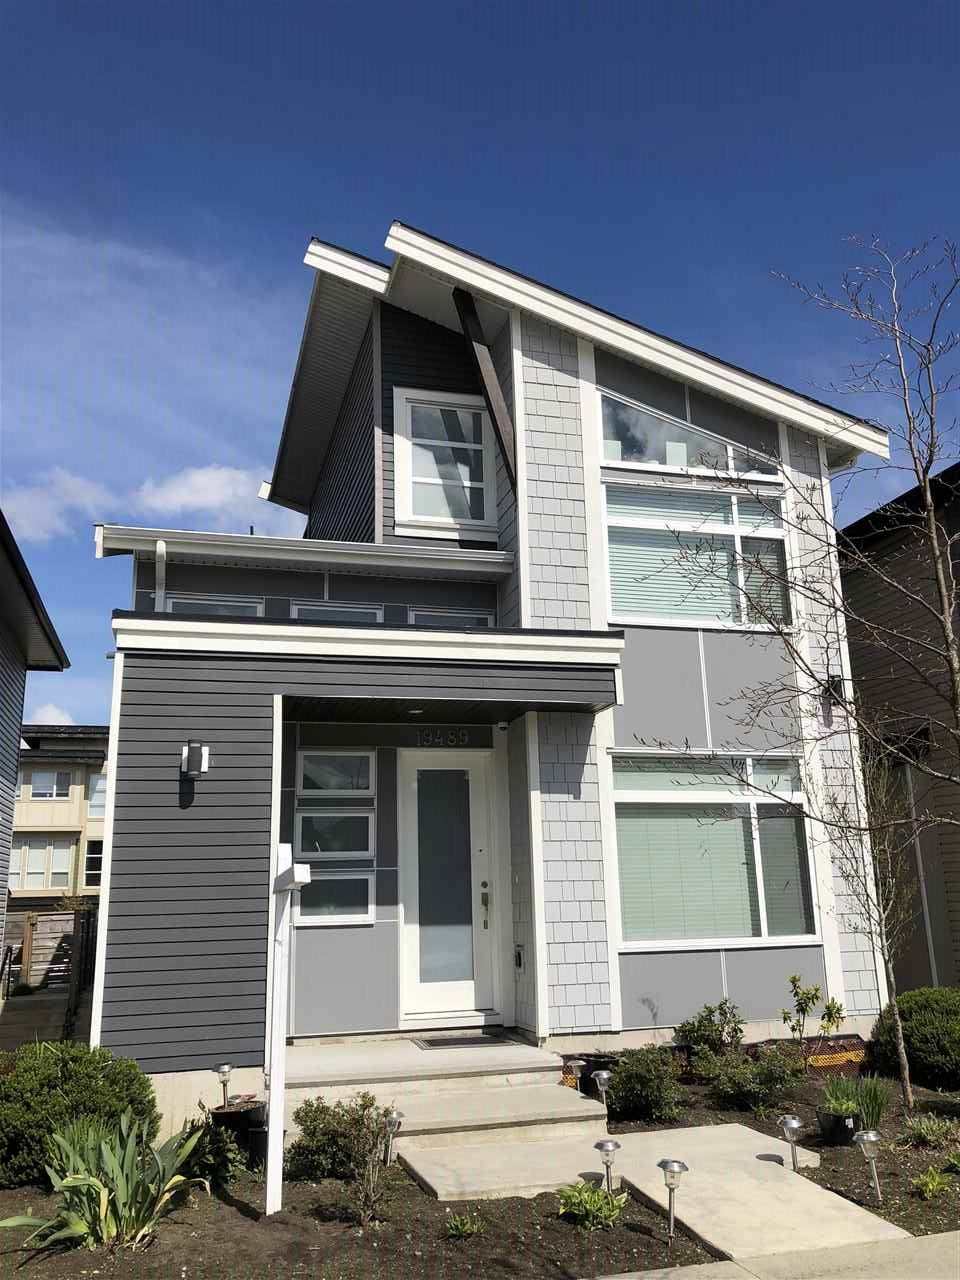 """Main Photo: 19489 72 Avenue in Surrey: Clayton House for sale in """"Dwell at 72nd"""" (Cloverdale)  : MLS®# R2358501"""